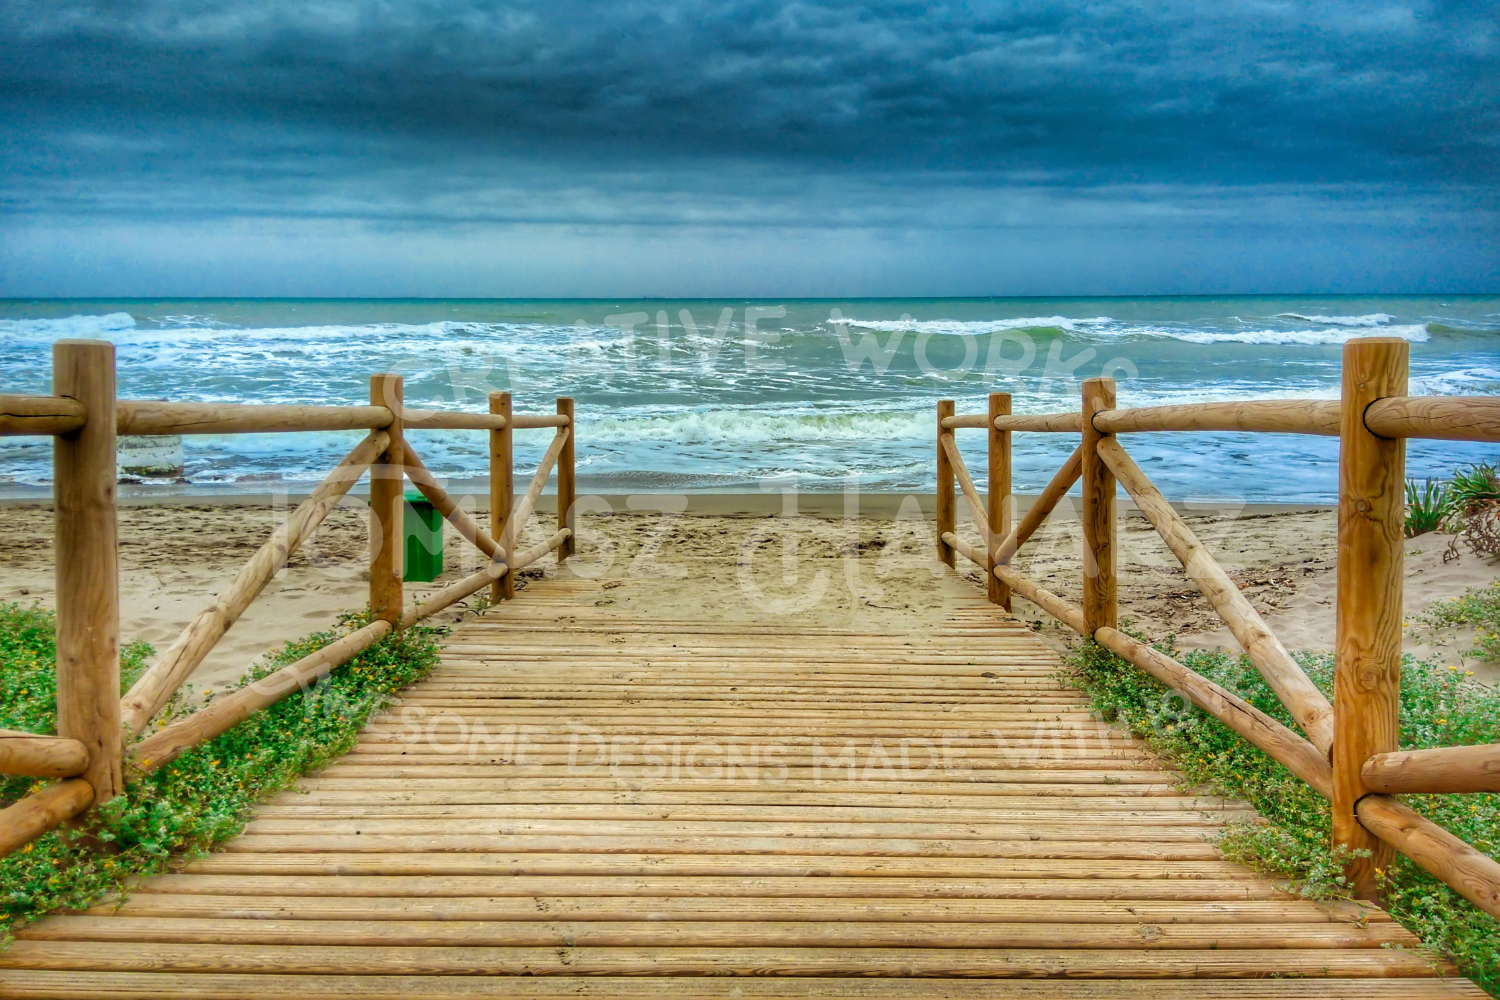 Wooden Promenade On The Beach example image 1